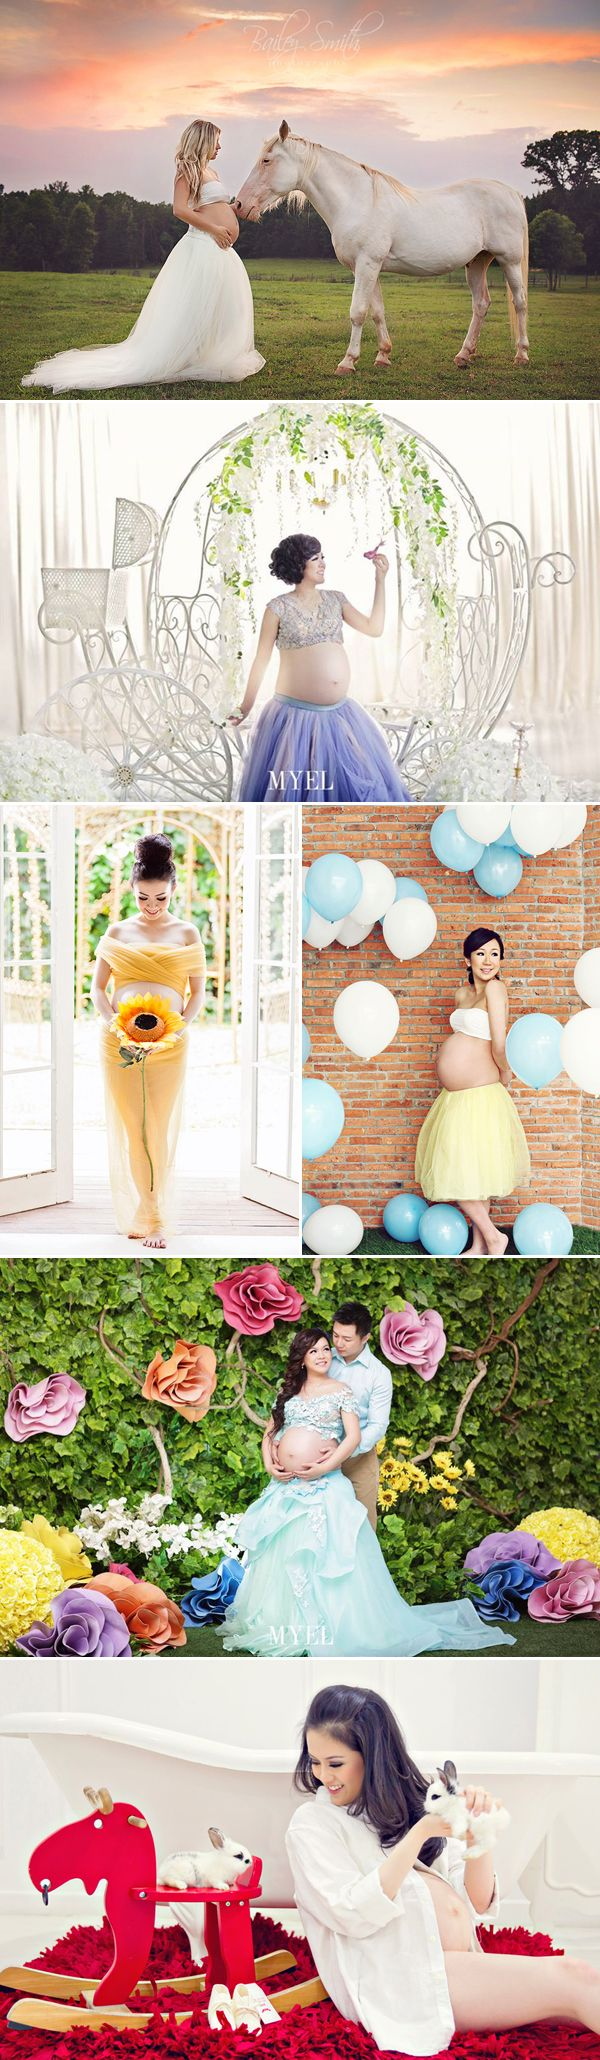 28 Modern and Captivating Themed Maternity Photo Ideas - Fairytale-inspired